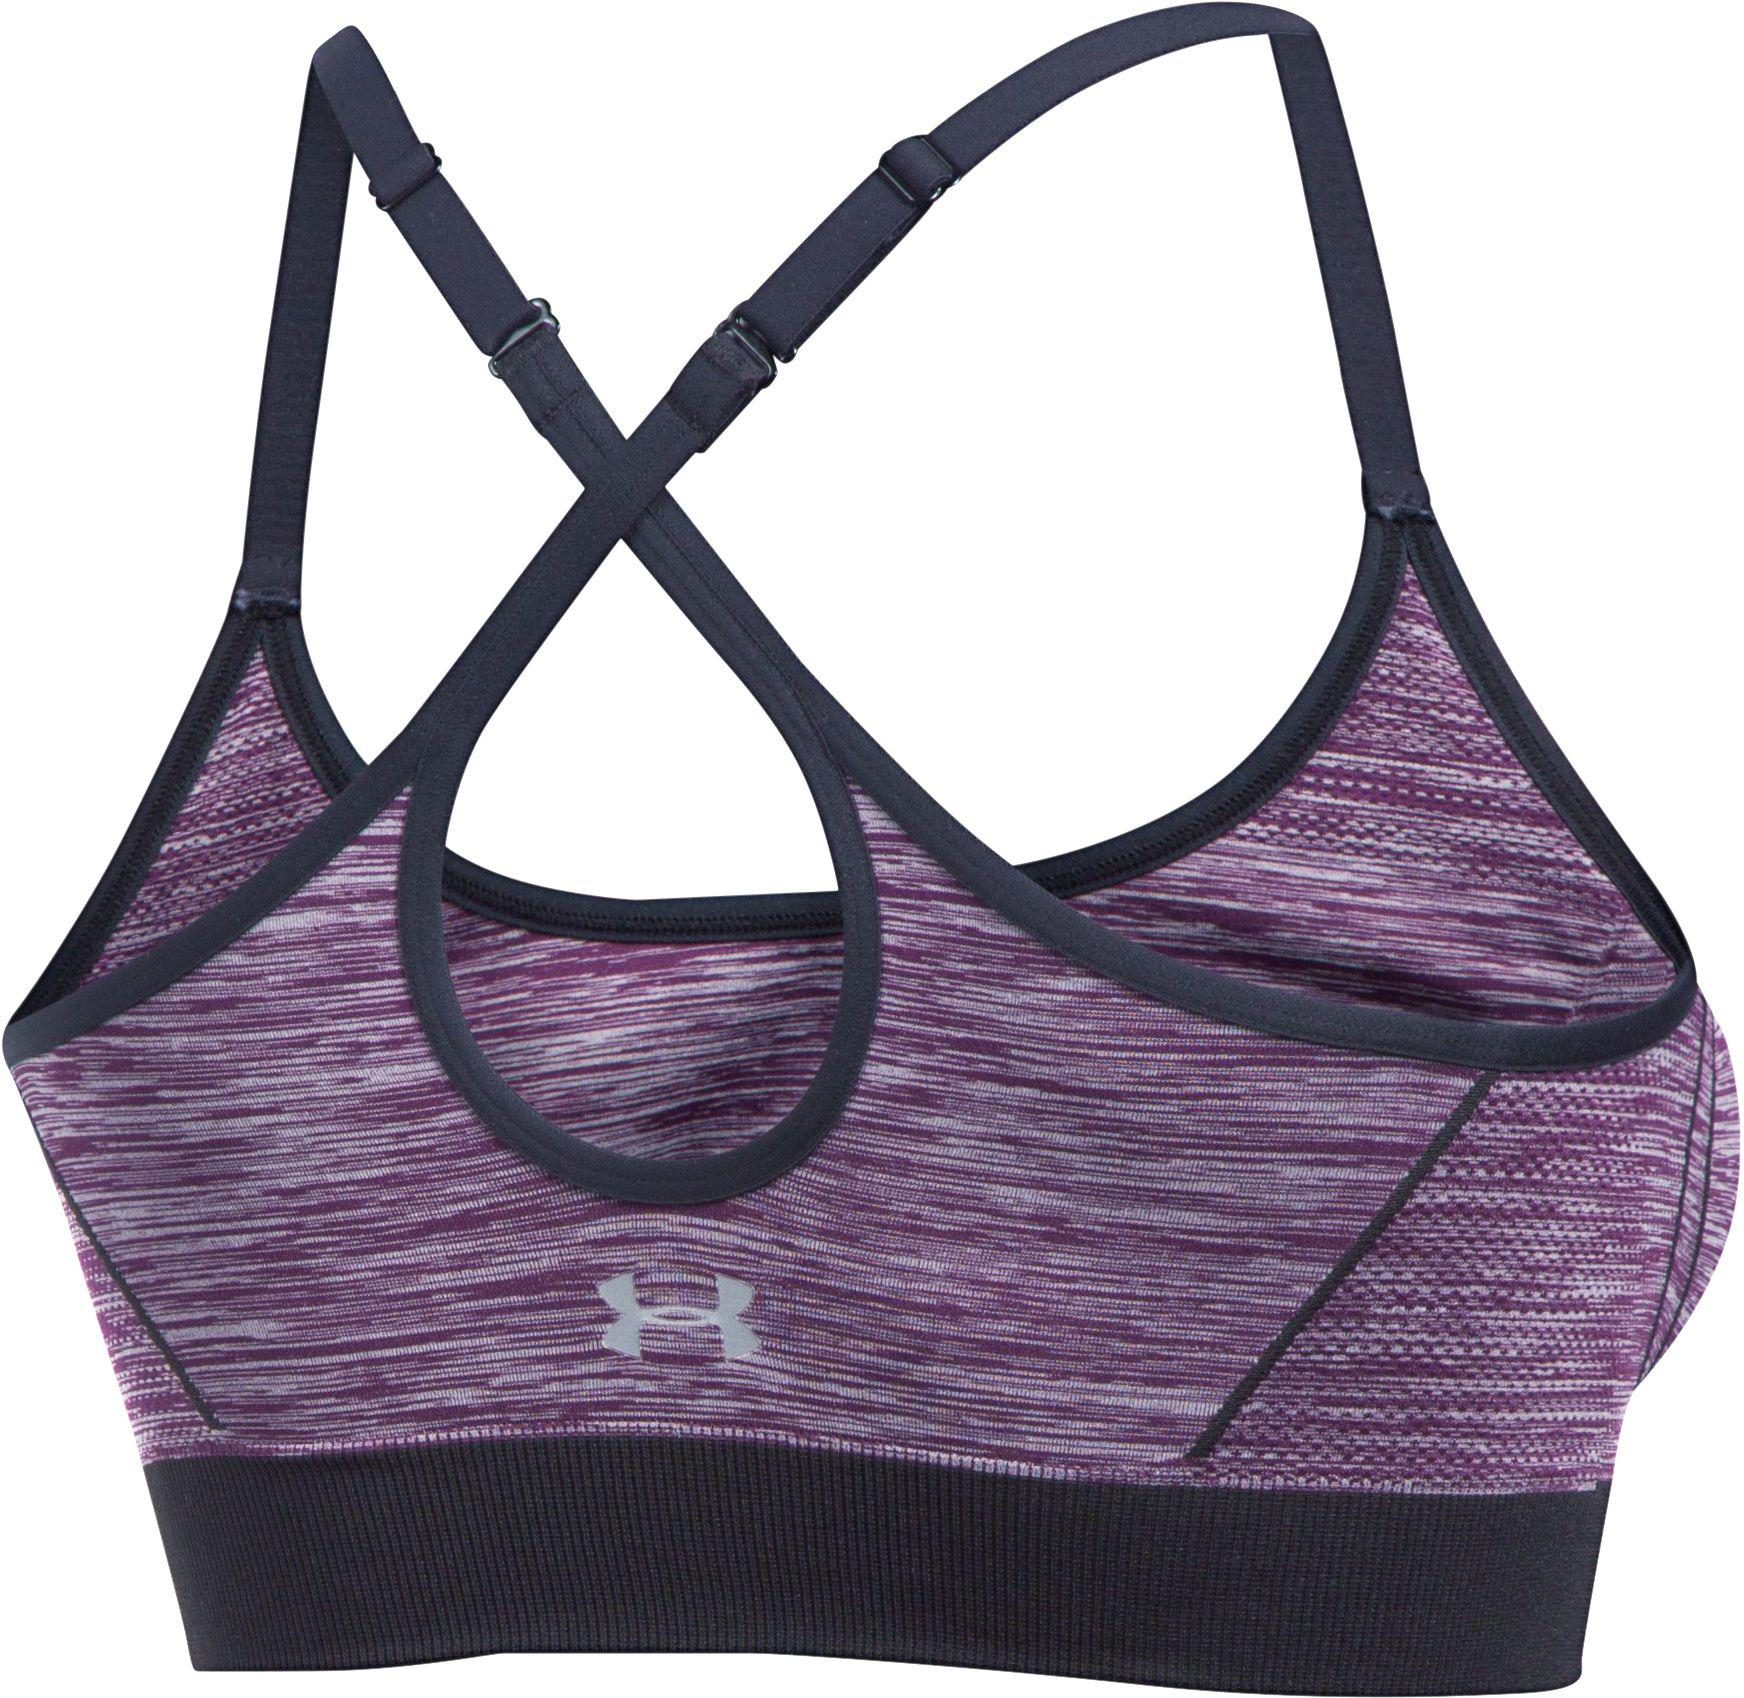 226c05d3d9cb6 Lyst - Under Armour Threadborne Seamless Low Pop Sports Bra